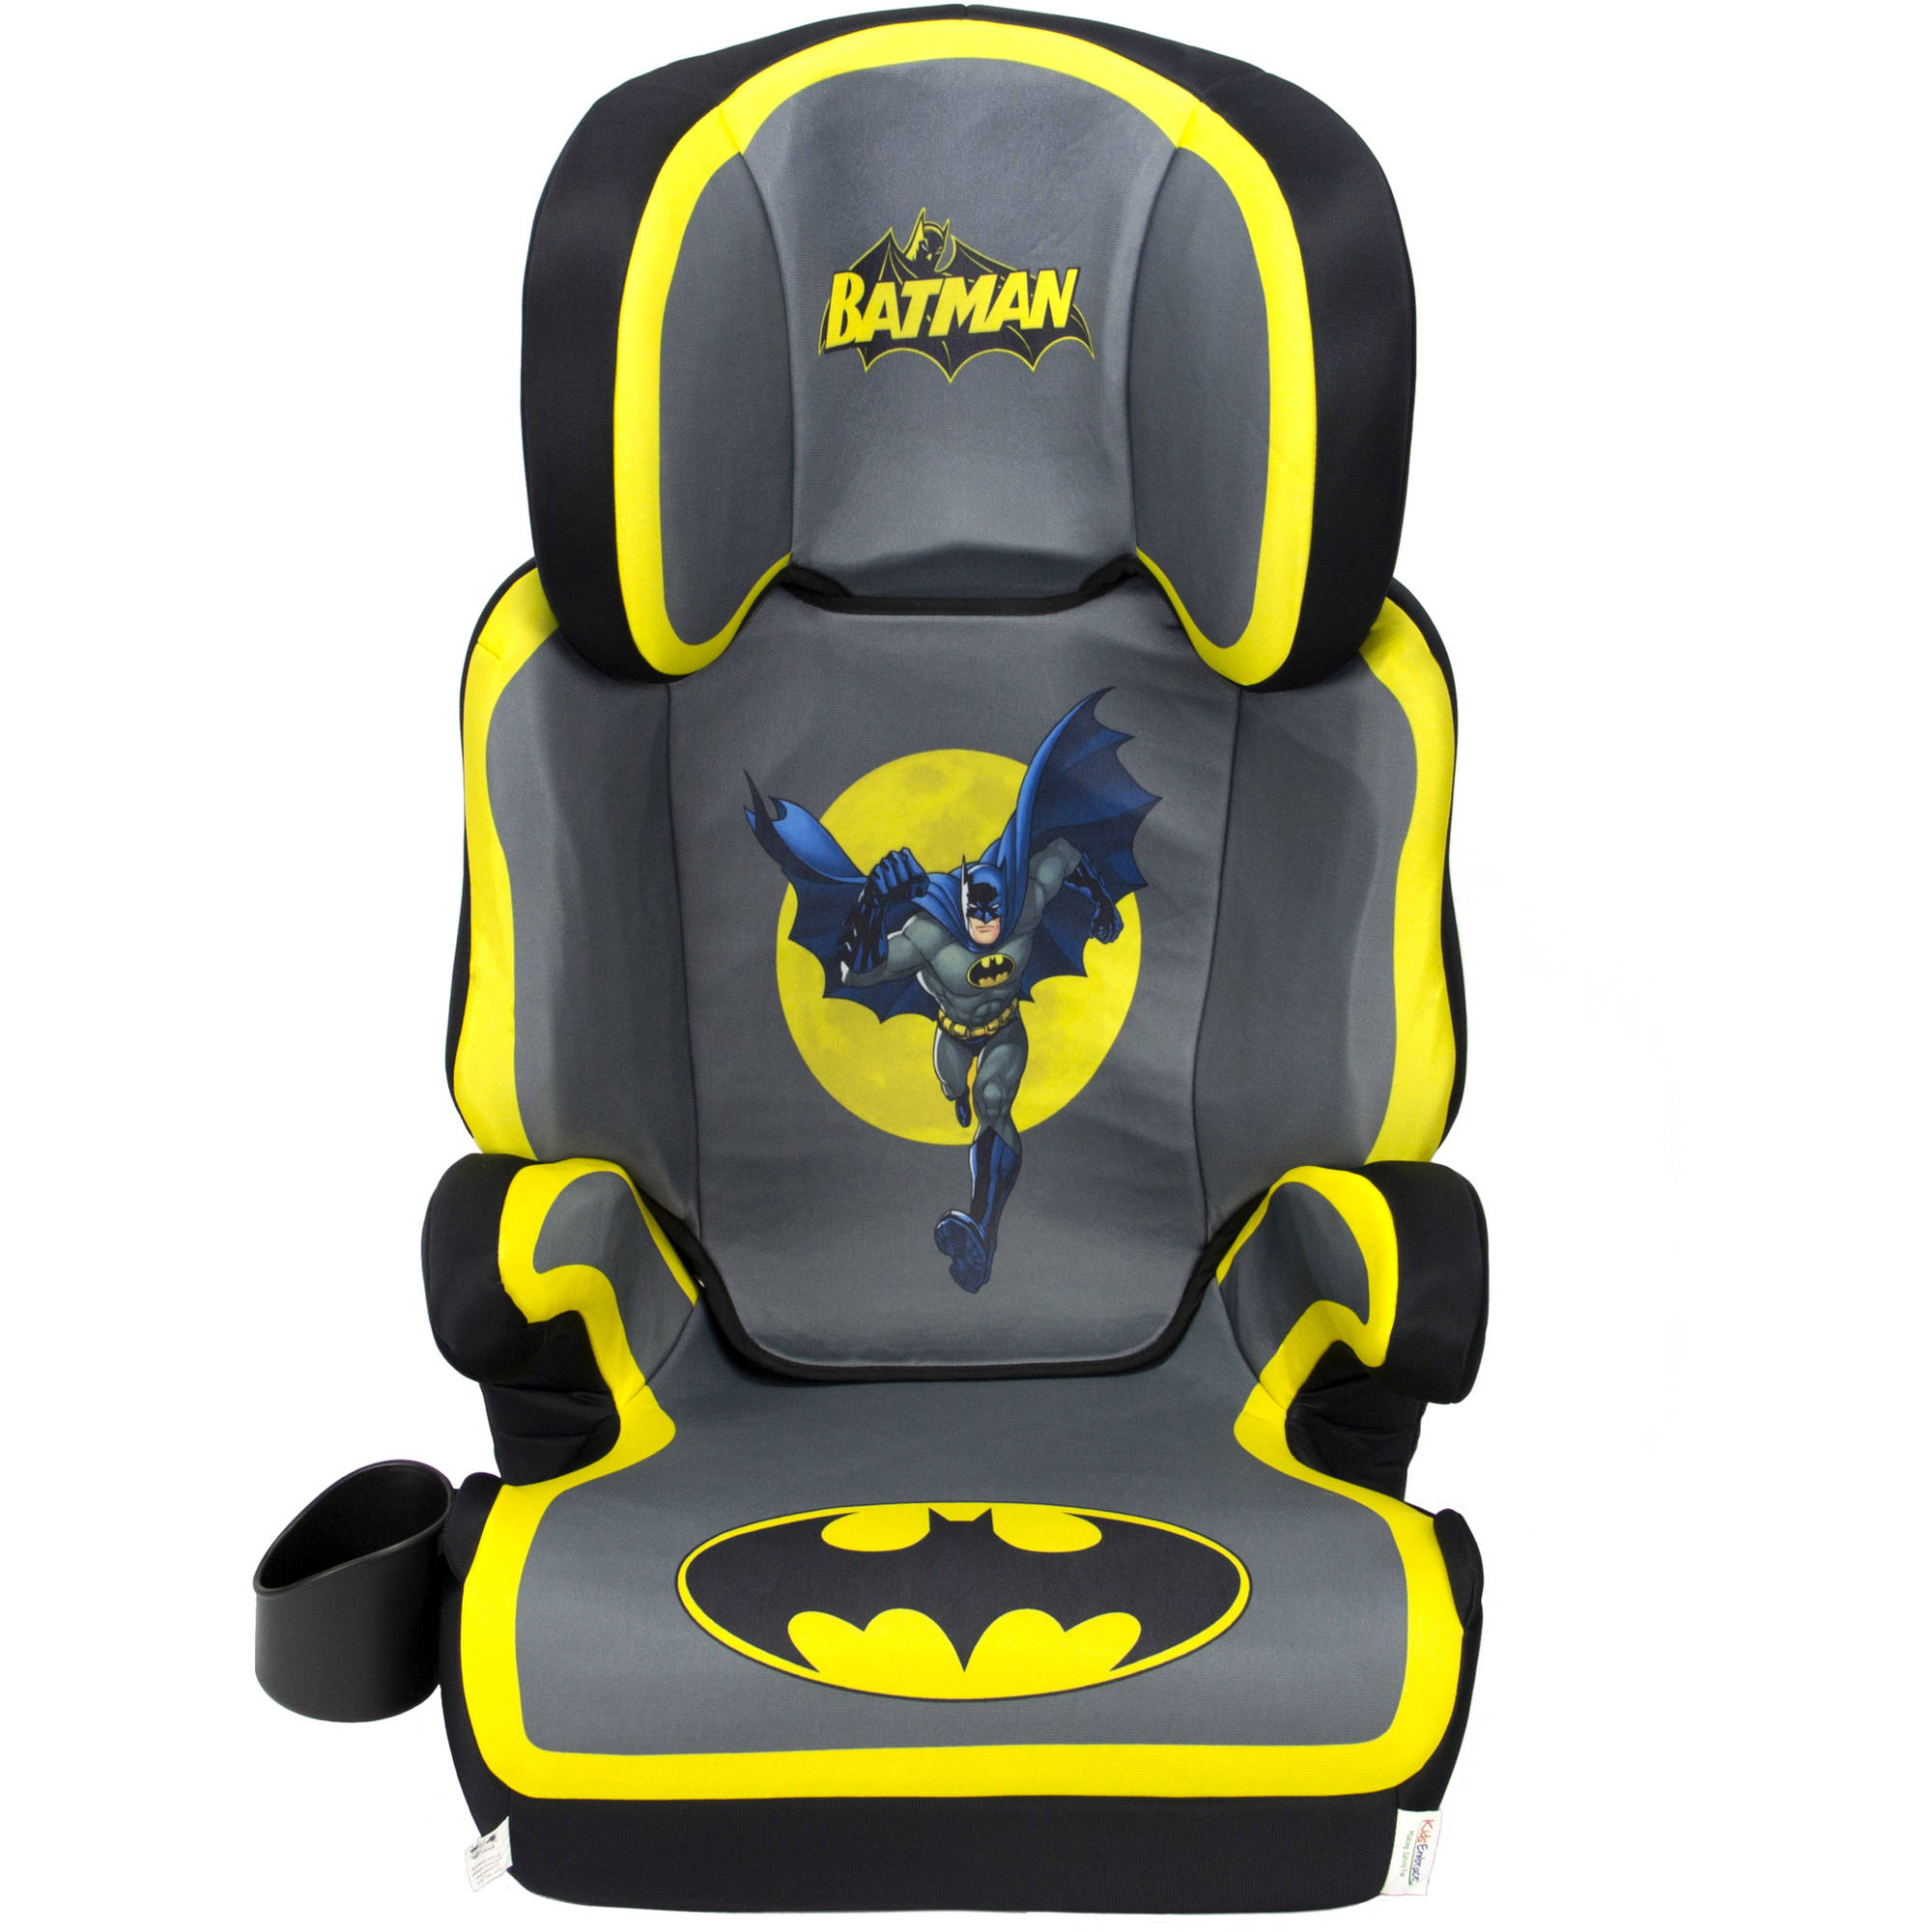 KidsEmbrace Fun-Ride Booster Car Seat, Batman